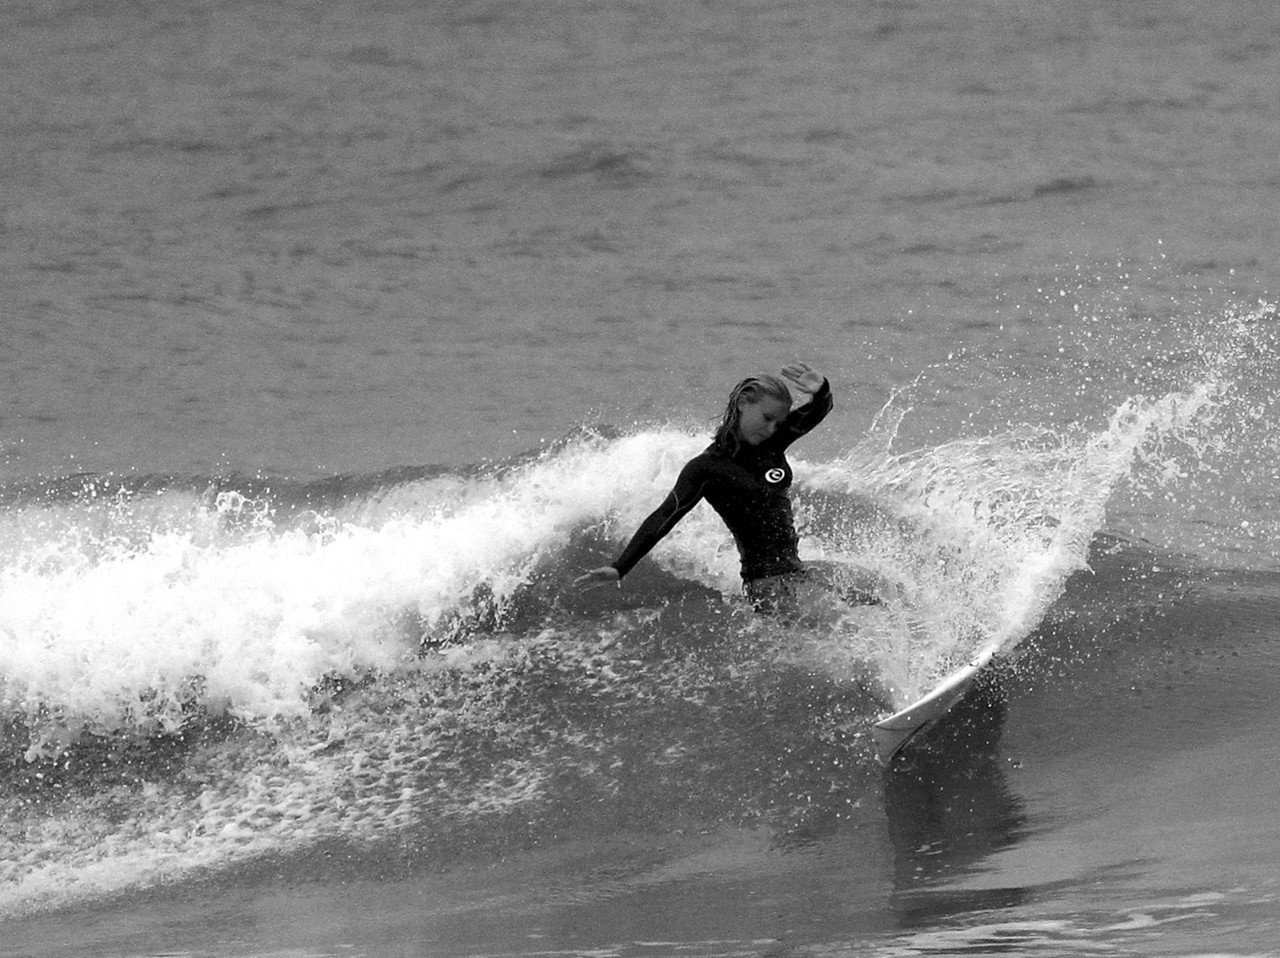 Surfing Carolina Beach, Pleasure Island, North Carolina